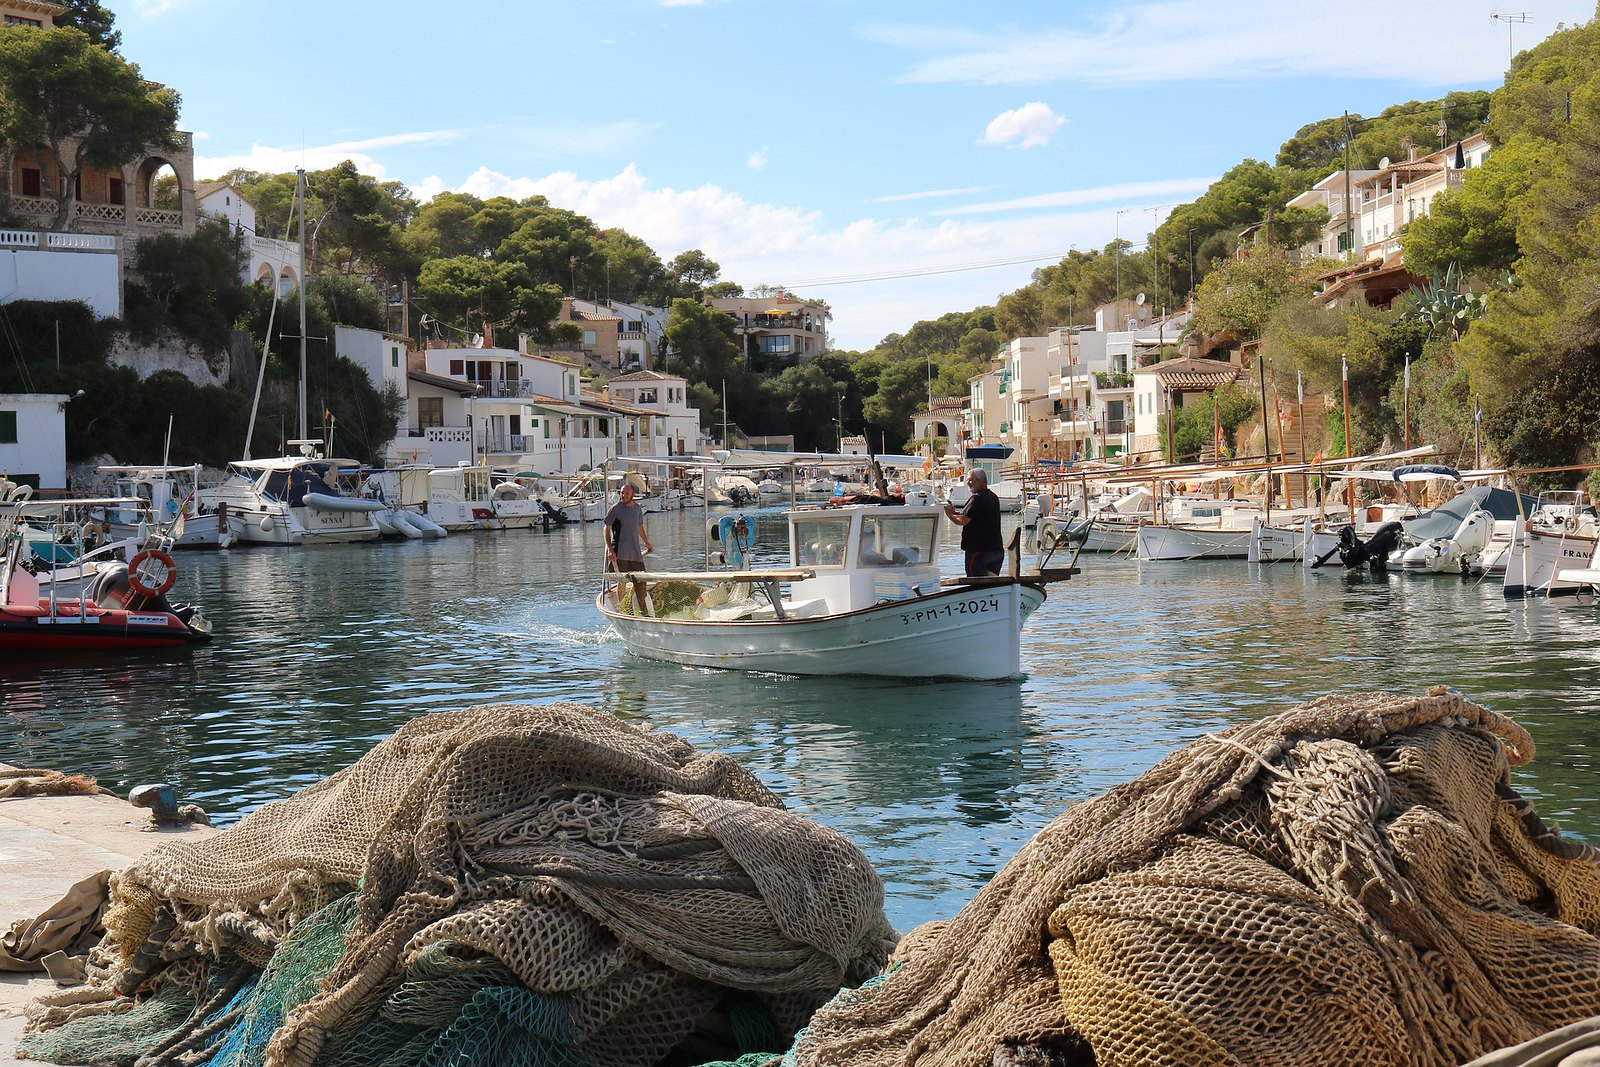 A fishermen's port in Cala Figuera, sorunded by small white houses and with a fishing boat sailinf off, in the centre of the picture. Mallorca Island, Spain